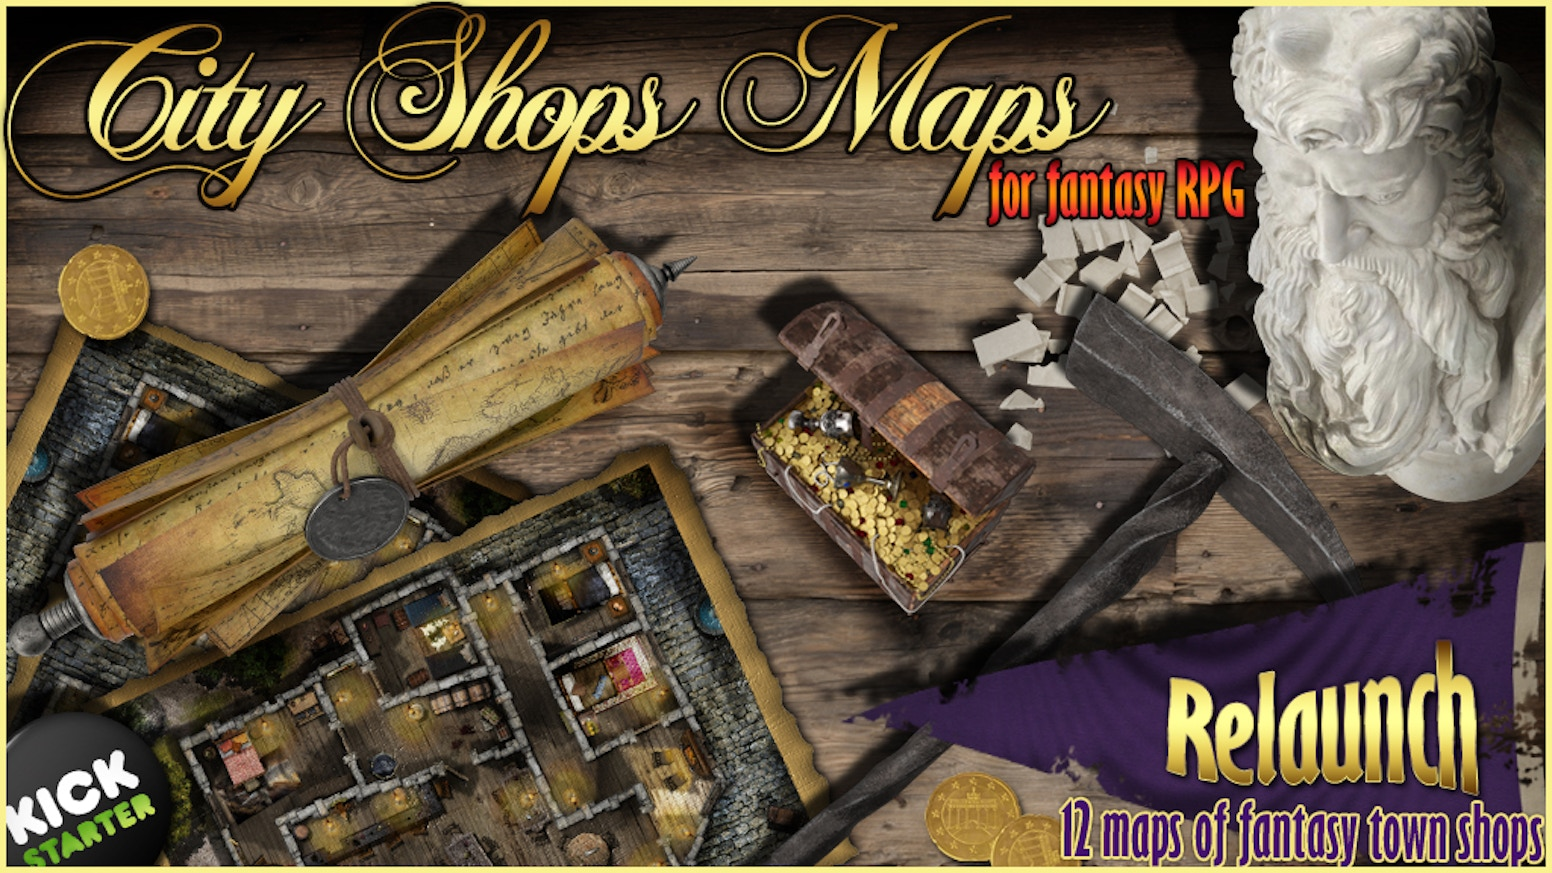 RPG Fantasy Maps The 12 Shops Relaunch by Gaudreau Steve » Your